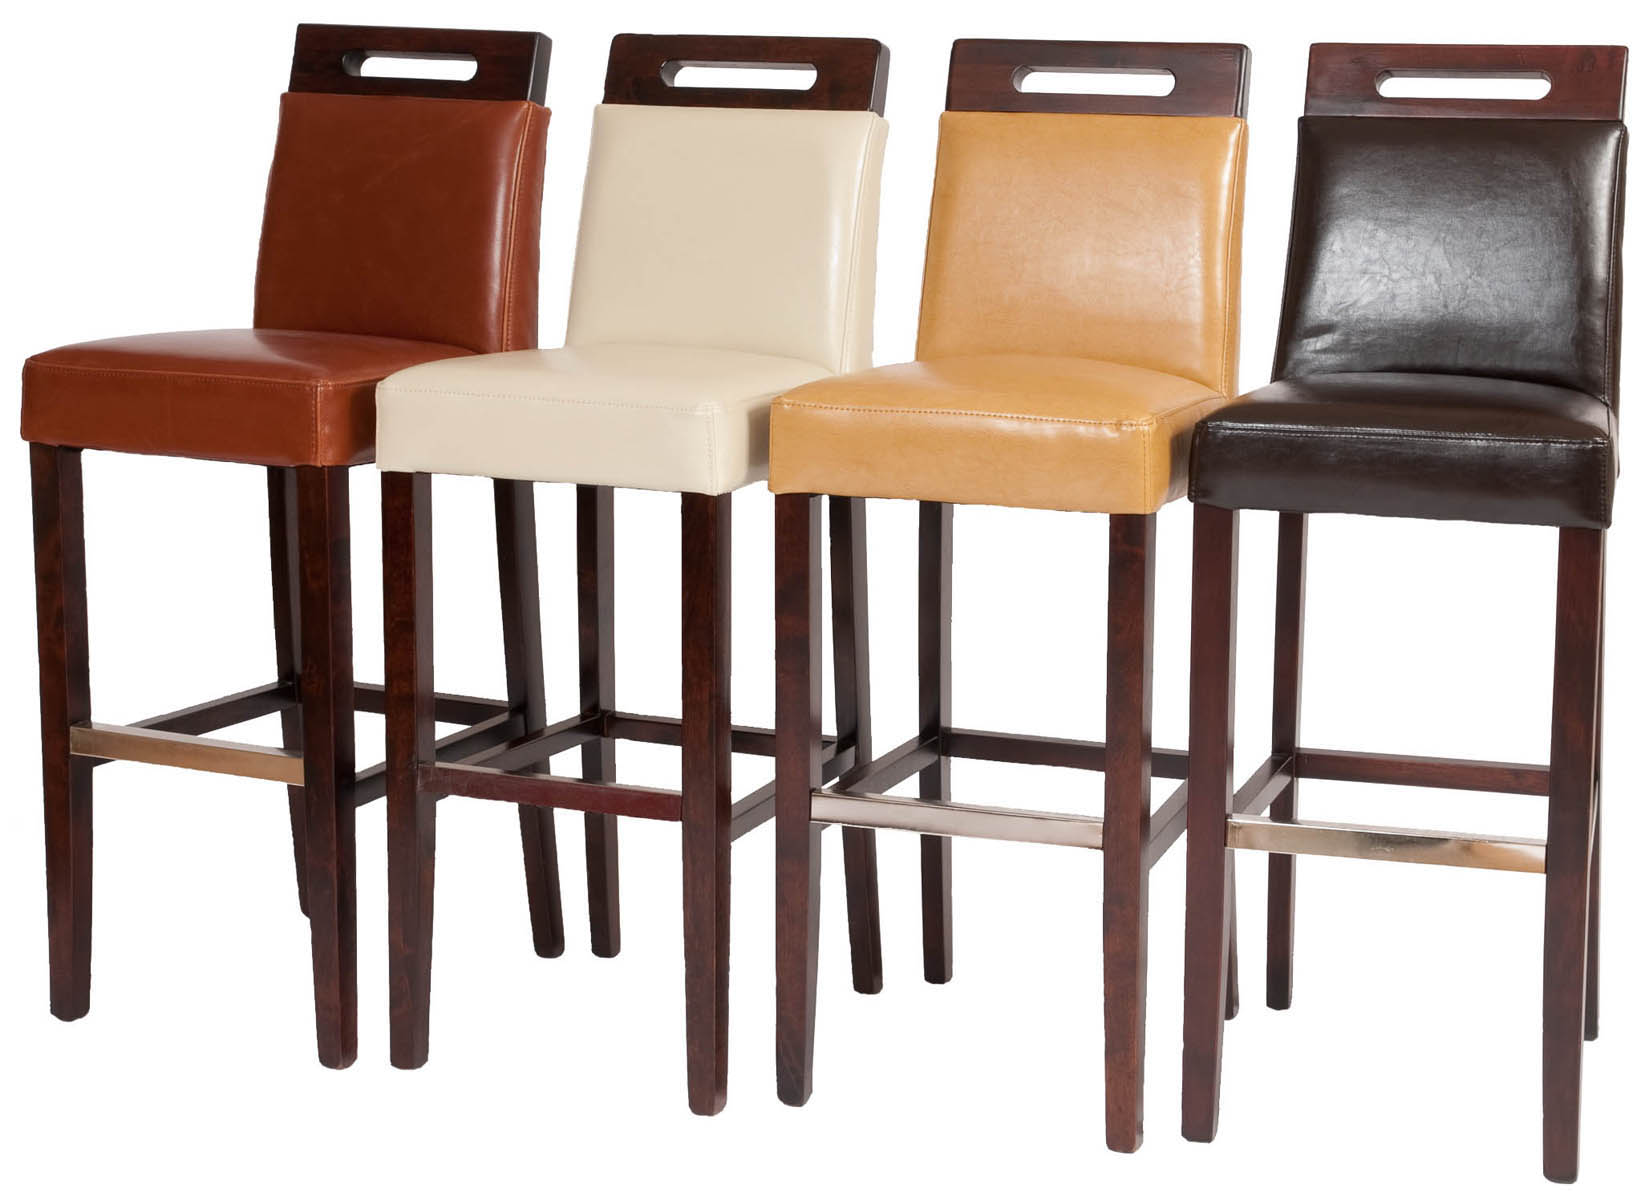 Attractive leather bar stools for home furniture with leather swivel bar stools